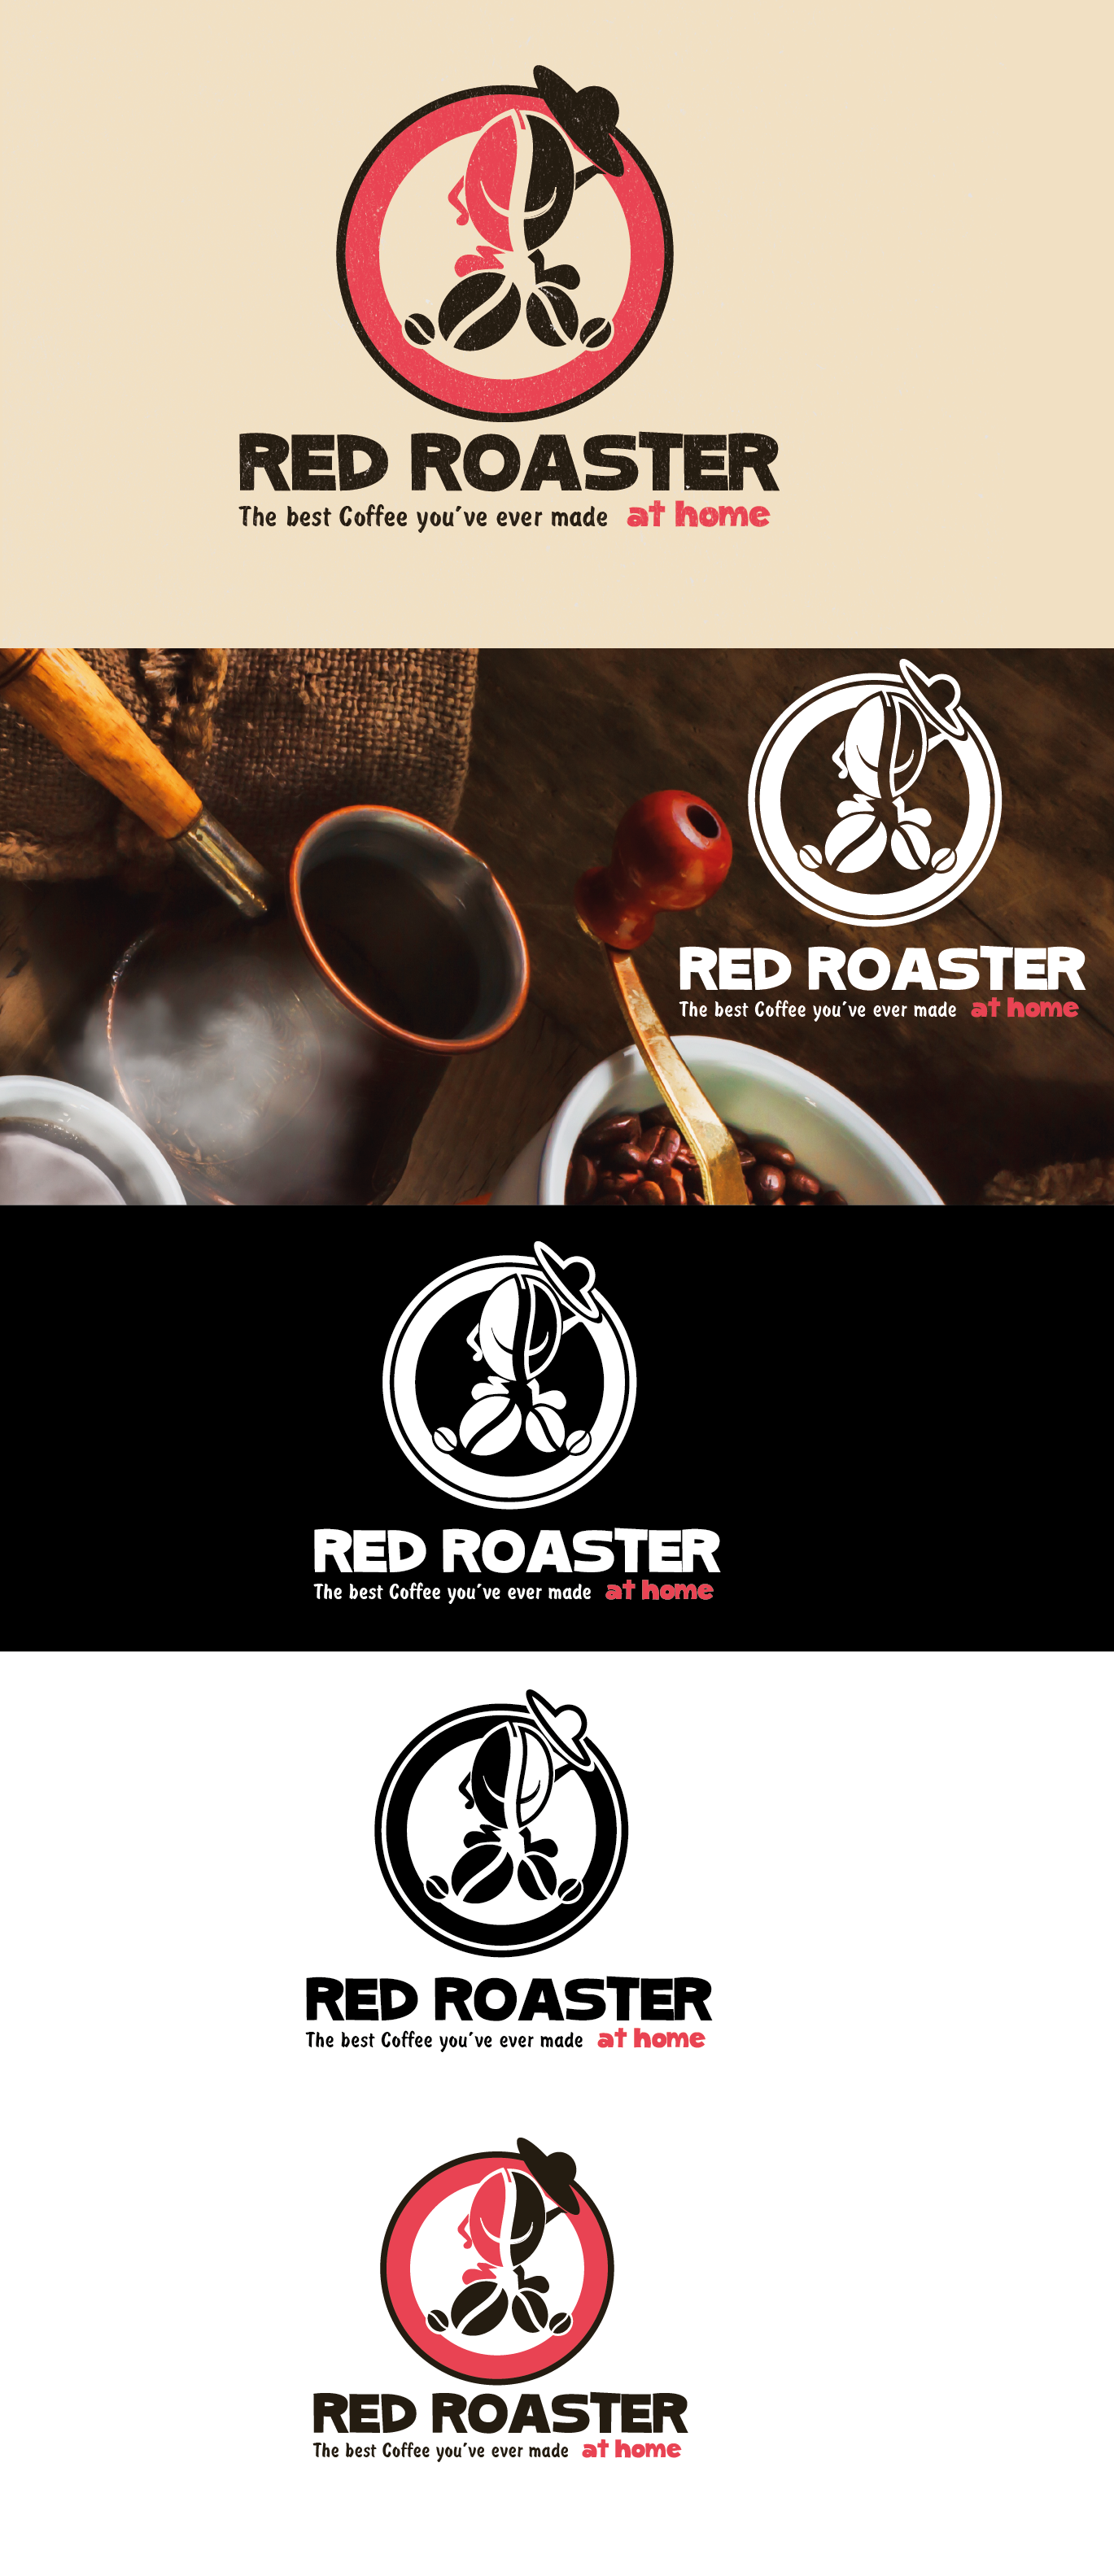 To create a warm and friendly logo and website for a small batch coffee roasters in Melbourne, Aus.